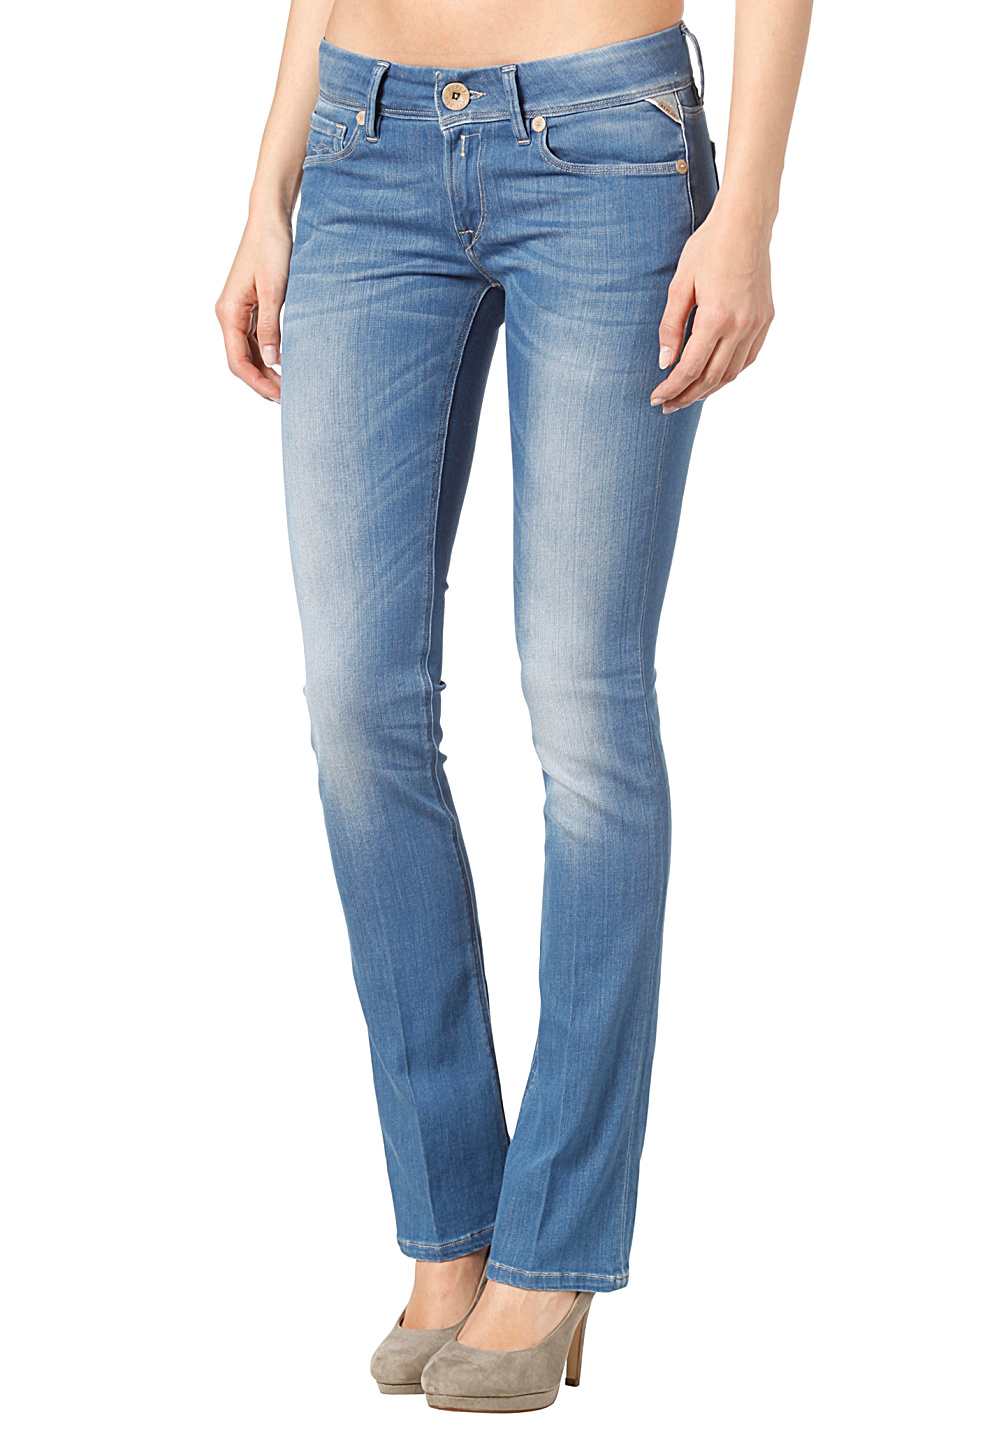 Replay Rearmy Slim Bootcut Jeans Pant - Denim Jeans for Women ...